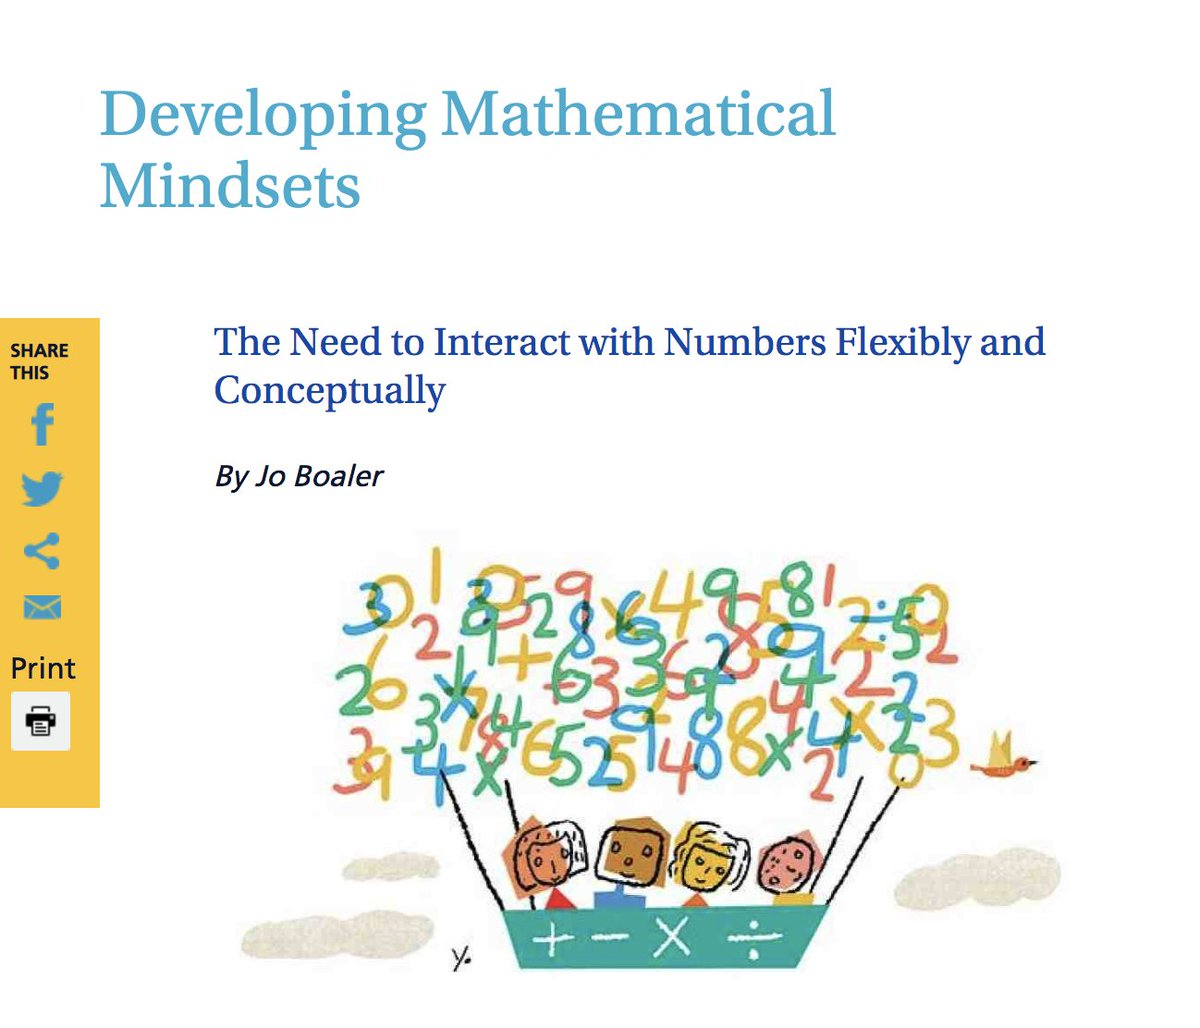 Today the #AmericanEducator publishes an extract from my Mathematical Mindsets book on the need to engage with numbers flexibly, and not through rote memorization. Please retweet, send to your admin, parents etc. @ahtower @AFTUnion Full article is here: https://www.aft.org/ae/winter2018-2019/boaler …